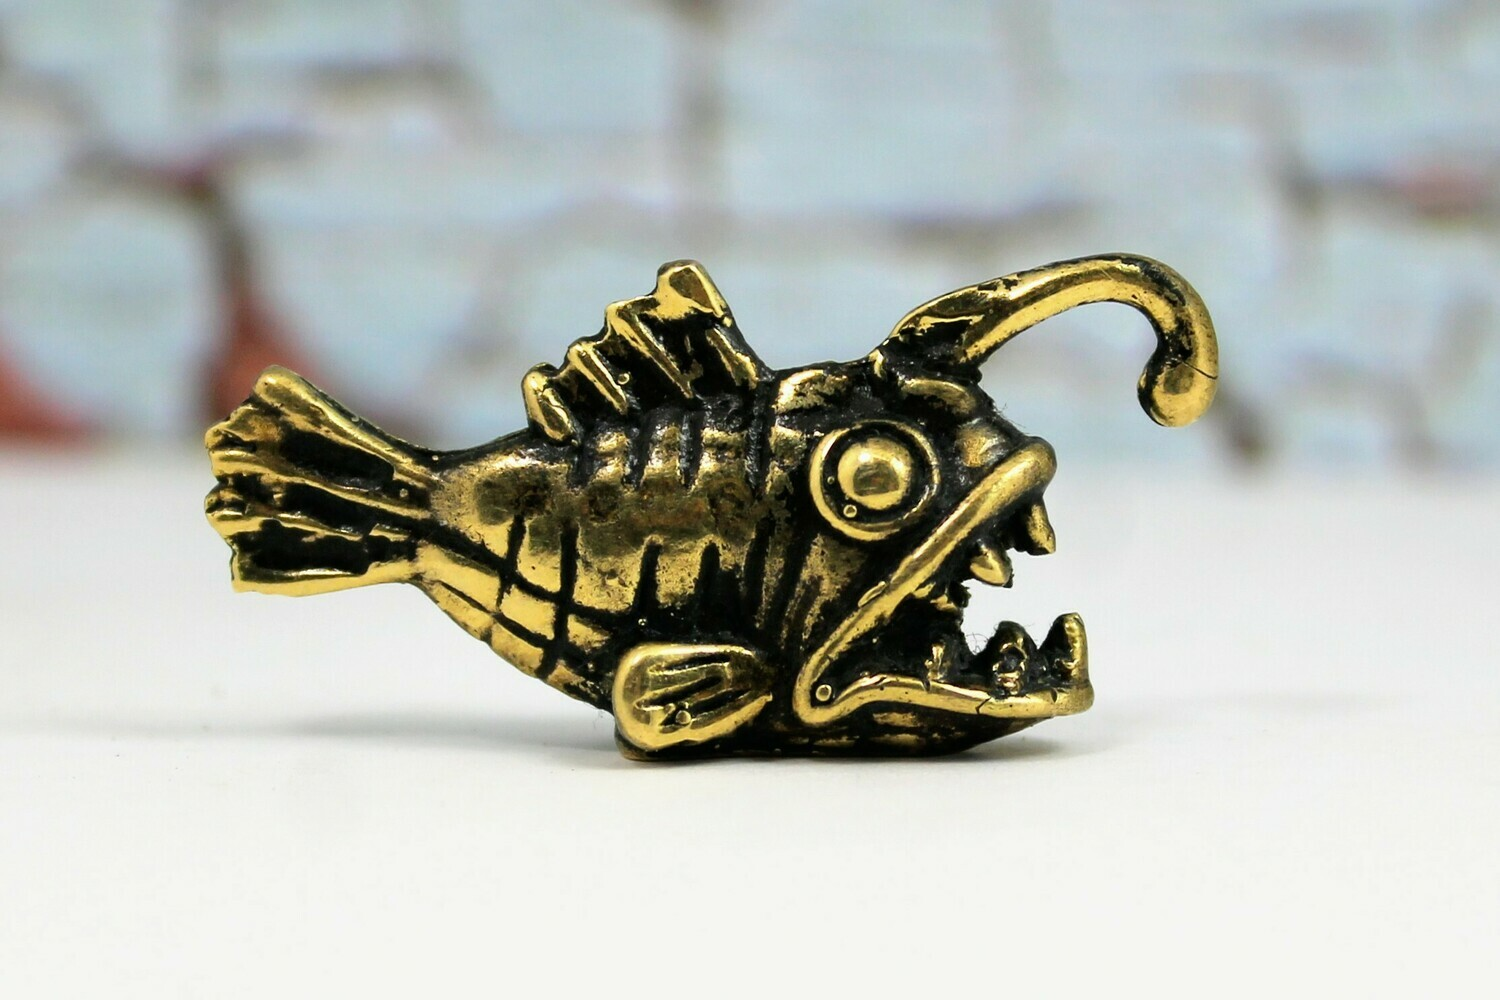 Anglerfish - Brass Collectible Handcrafted Tiny Figurine